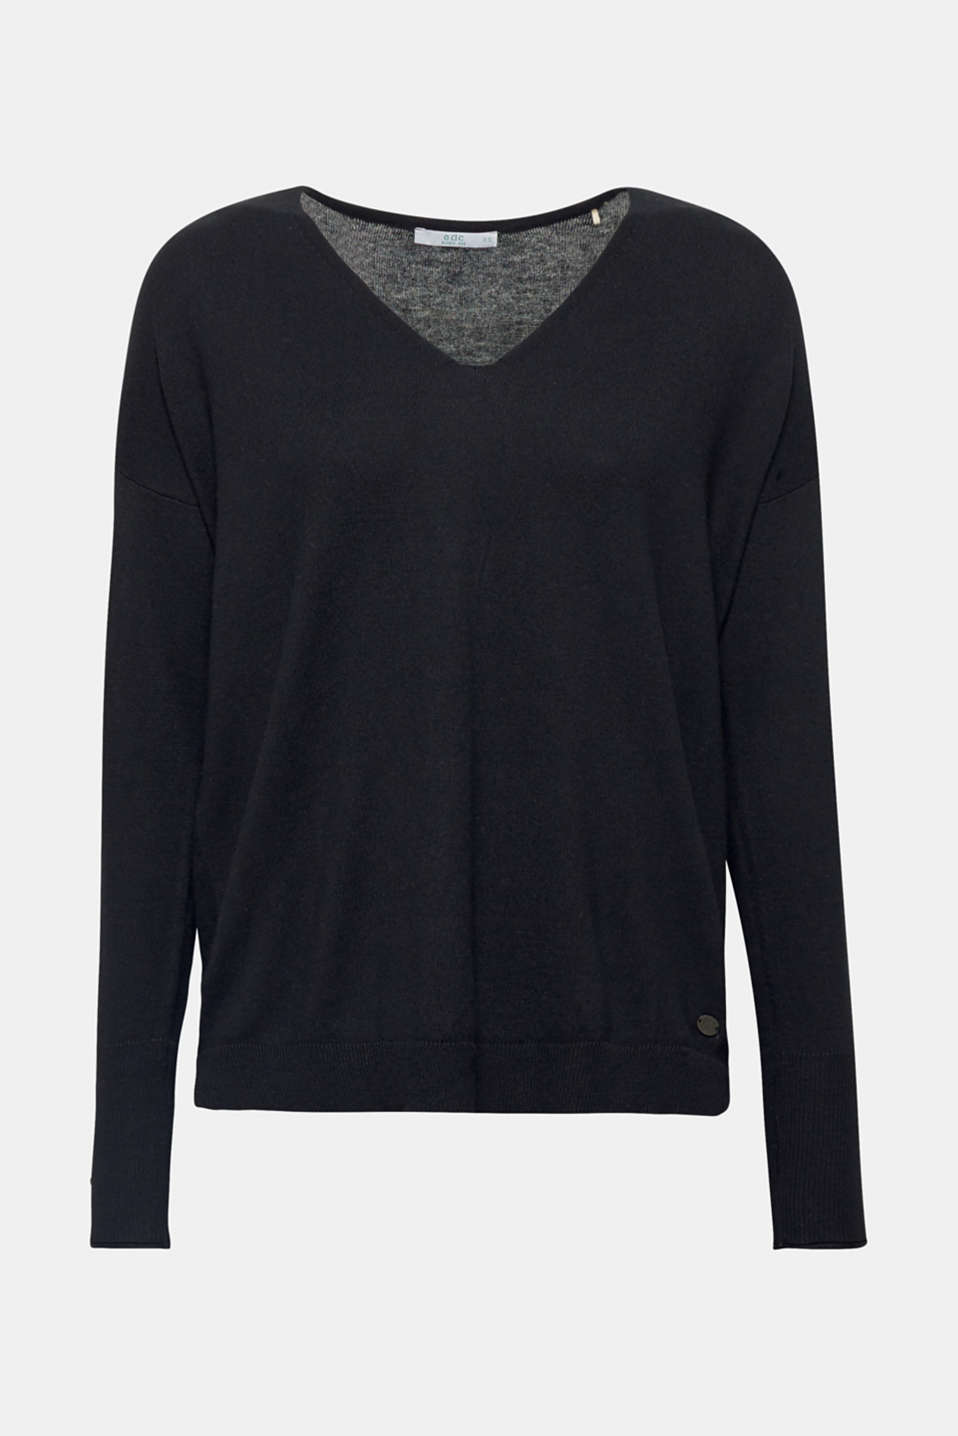 Understated, casual and sustainable: its on-trend, oversized silhouette and soft yarn containing exceptionally high-quality organic cotton make this jumper something else.